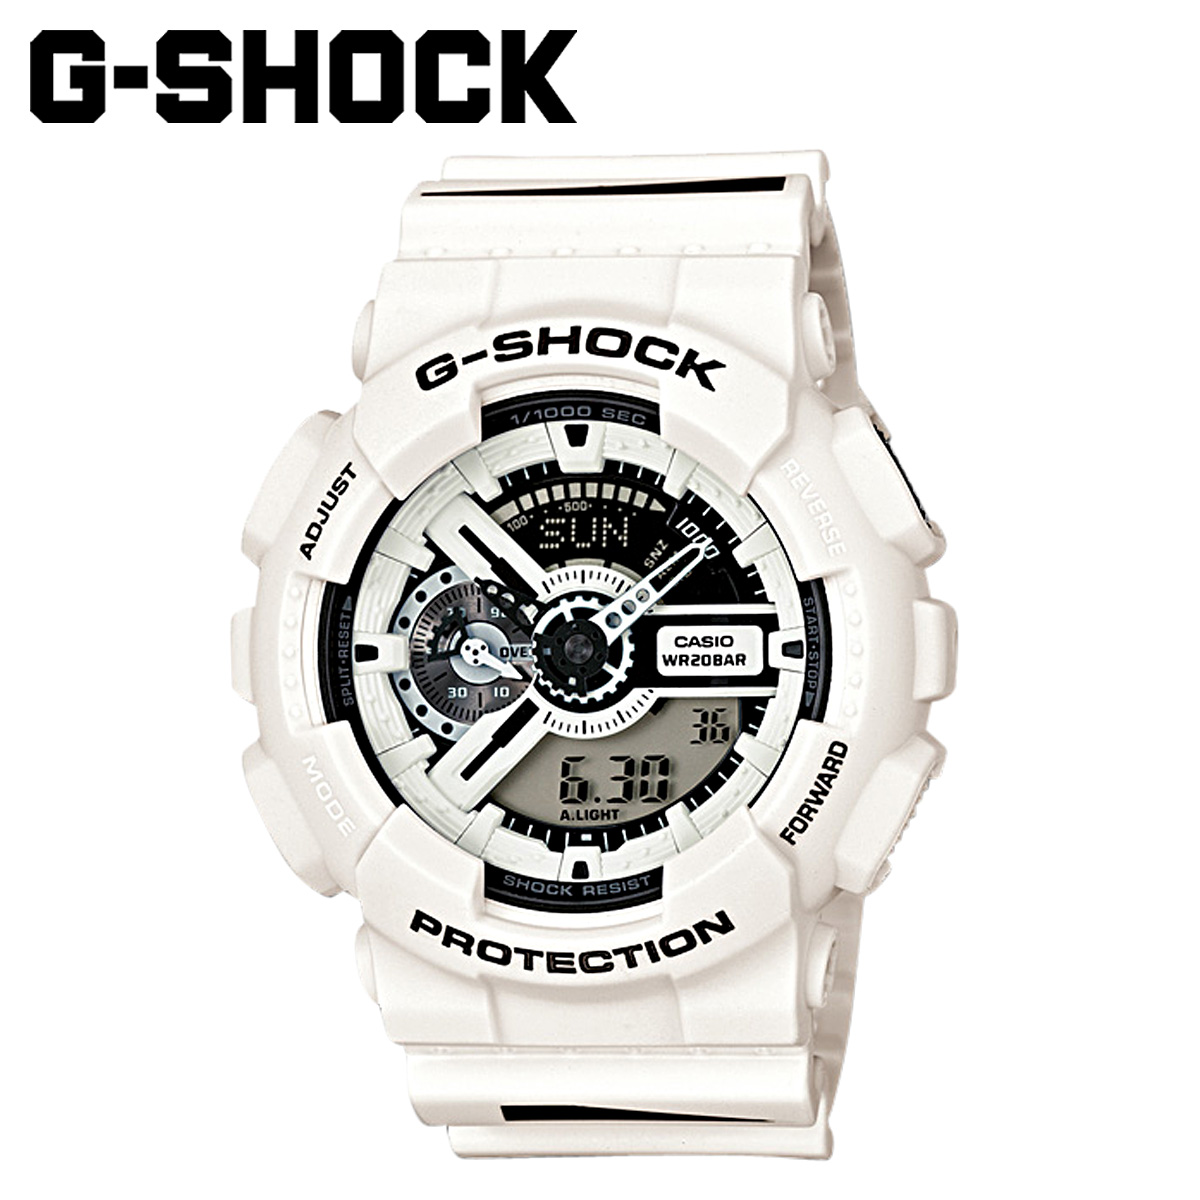 Casio CASIO G-SHOCK watch GA-110MH-7AJR Maharishi collaboration model men gap Dis clock